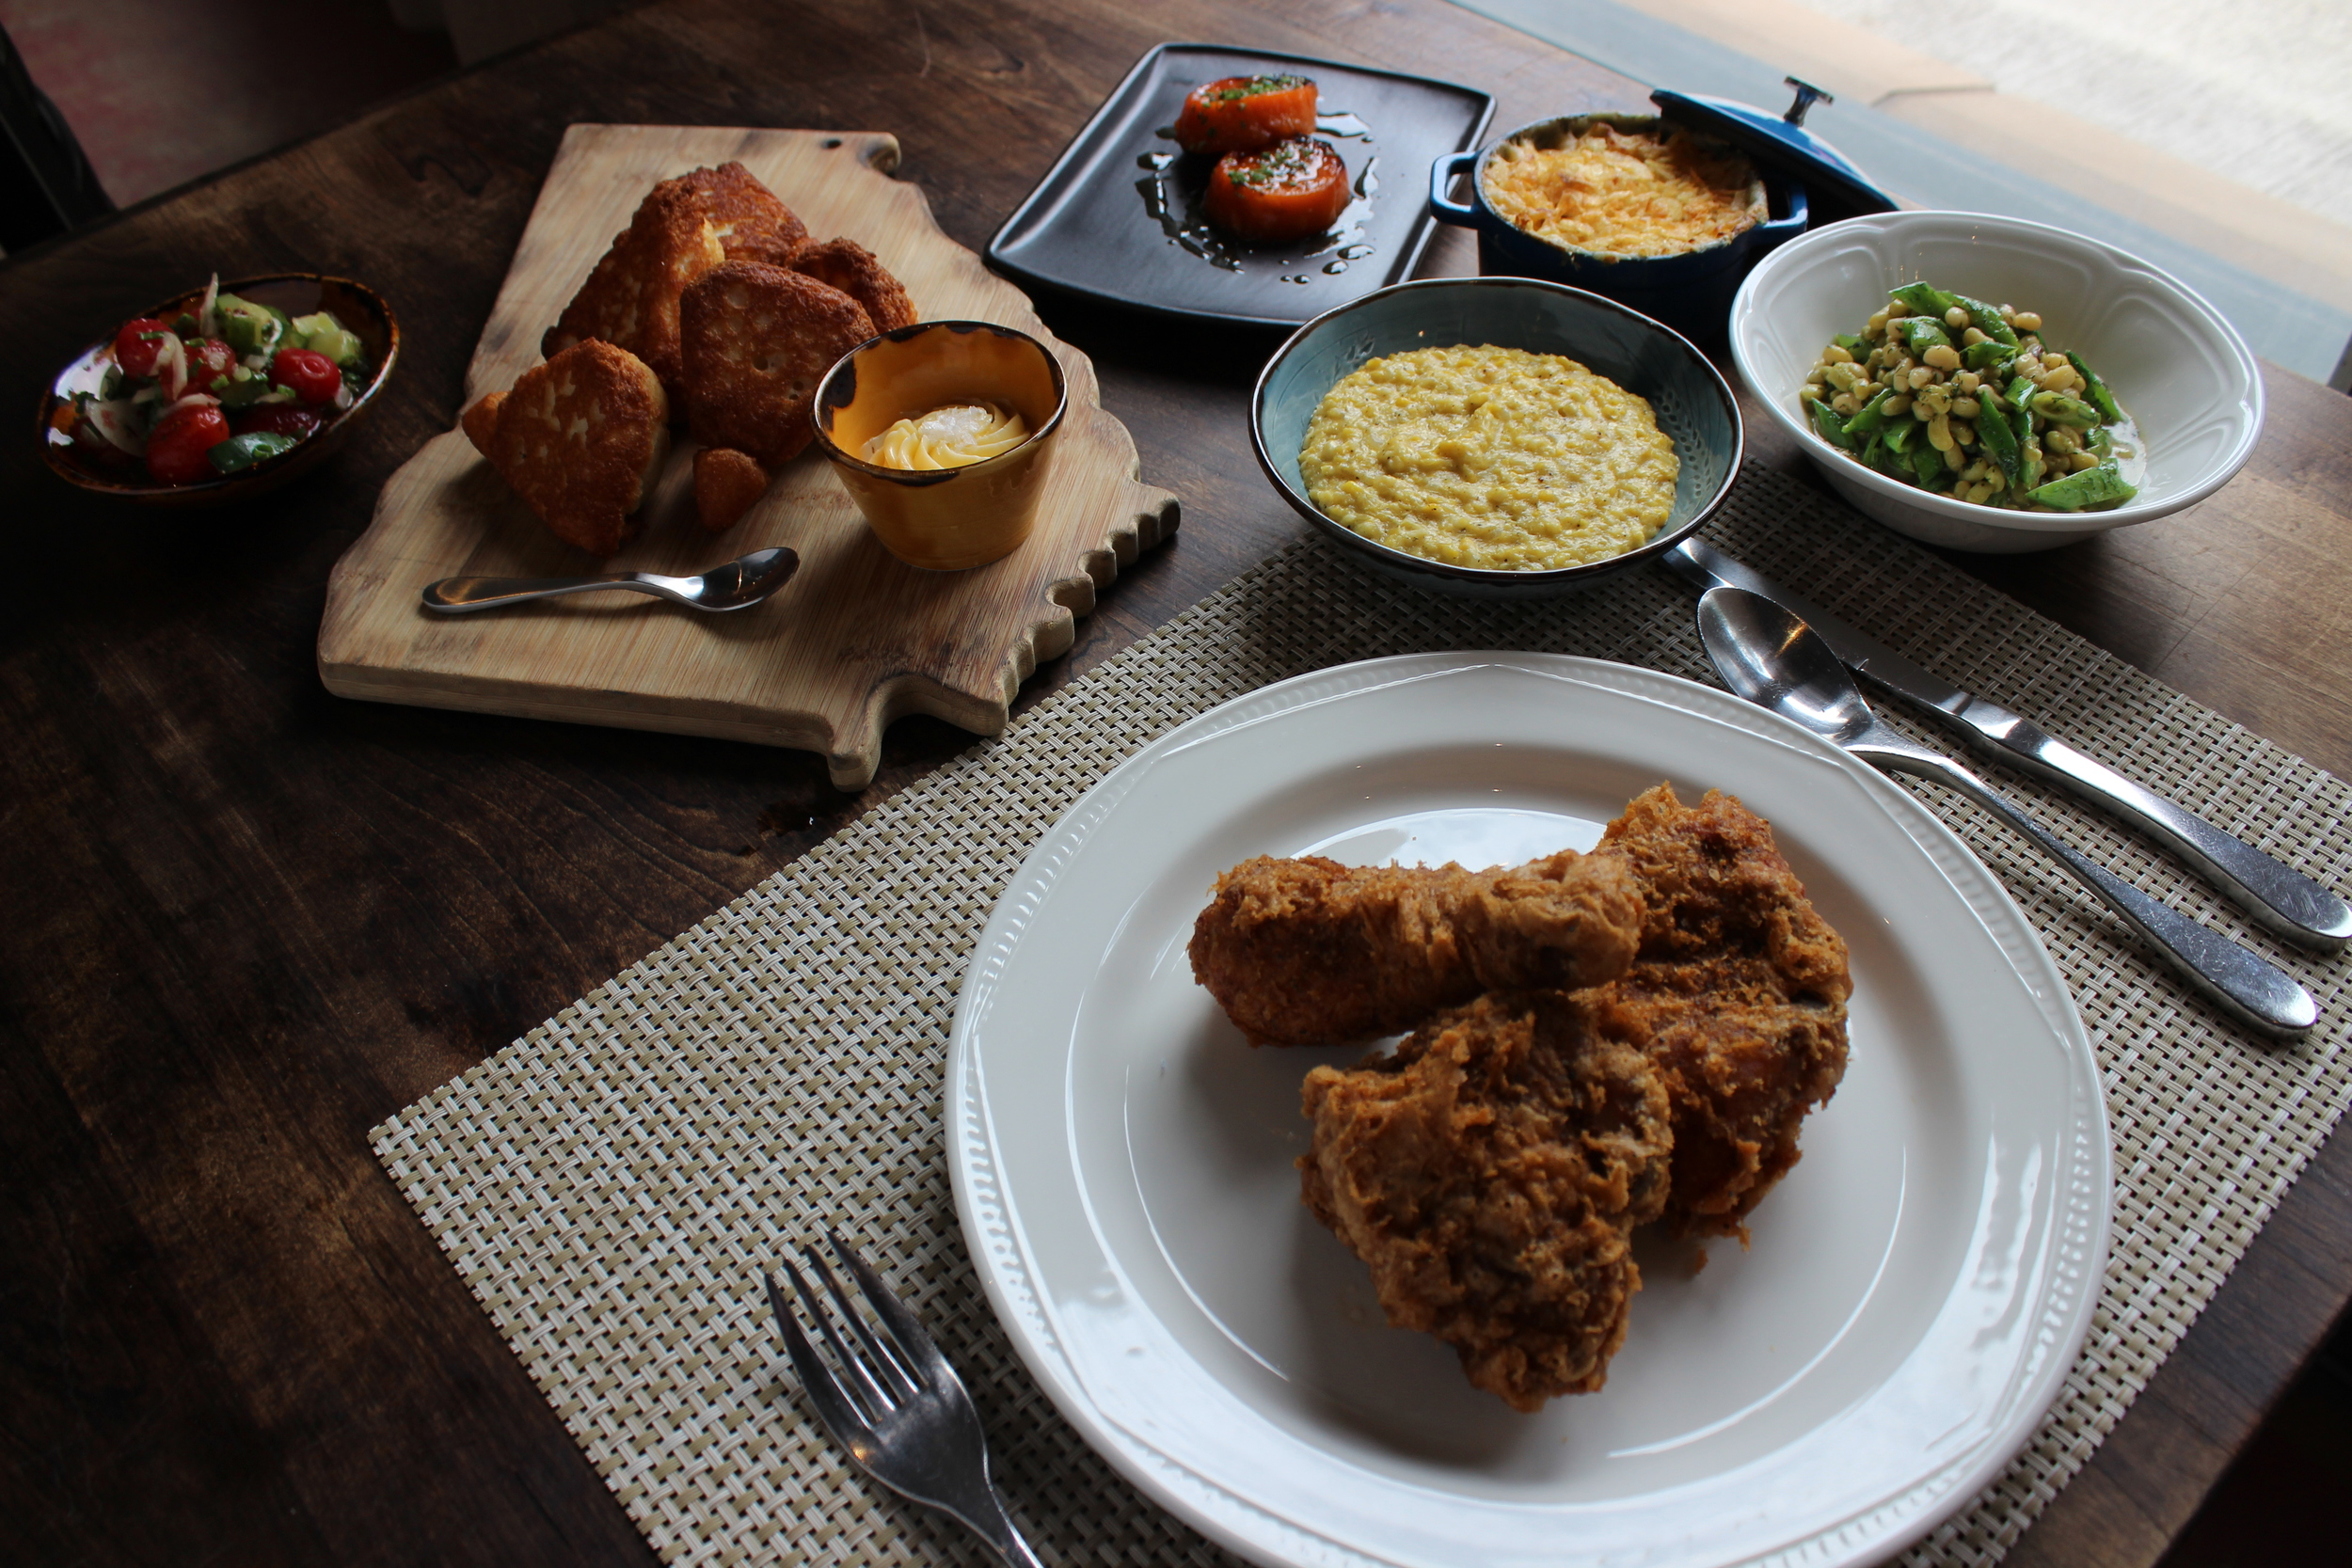 Revival Fried Chicken, Lemon Glazed Sweet Potatoes, Cucumber Chow Chow, Local Lady Peas and Snap Peas in Lemon Dill Butter, Fatback Fried Corn, Mid-Century Mac & Gillespie Family Iron Skillet Cornbread.JPG